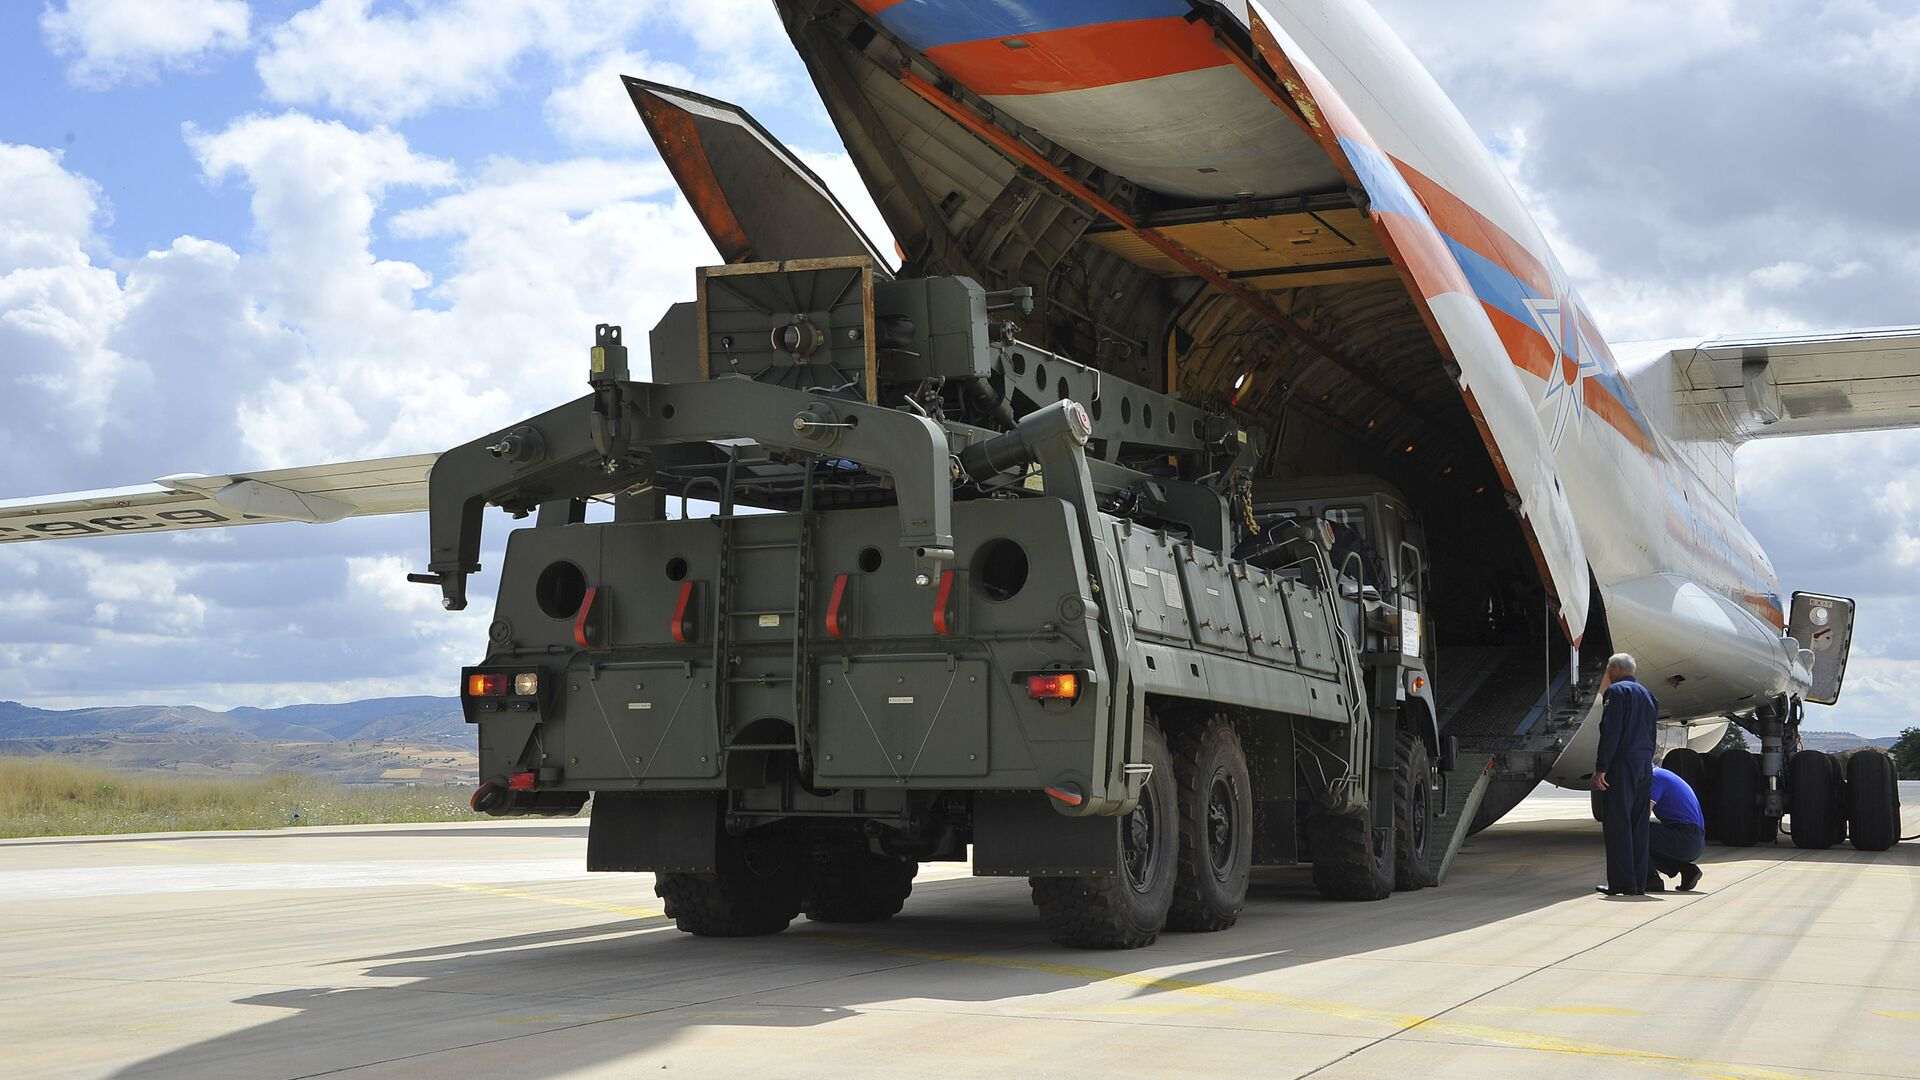 Military vehicles and equipment, parts of the S-400 air defense systems, are unloaded from a Russian transport aircraft, at Murted military airport in Ankara, Turkey, Friday, July 12, 2019 - Sputnik International, 1920, 05.08.2021